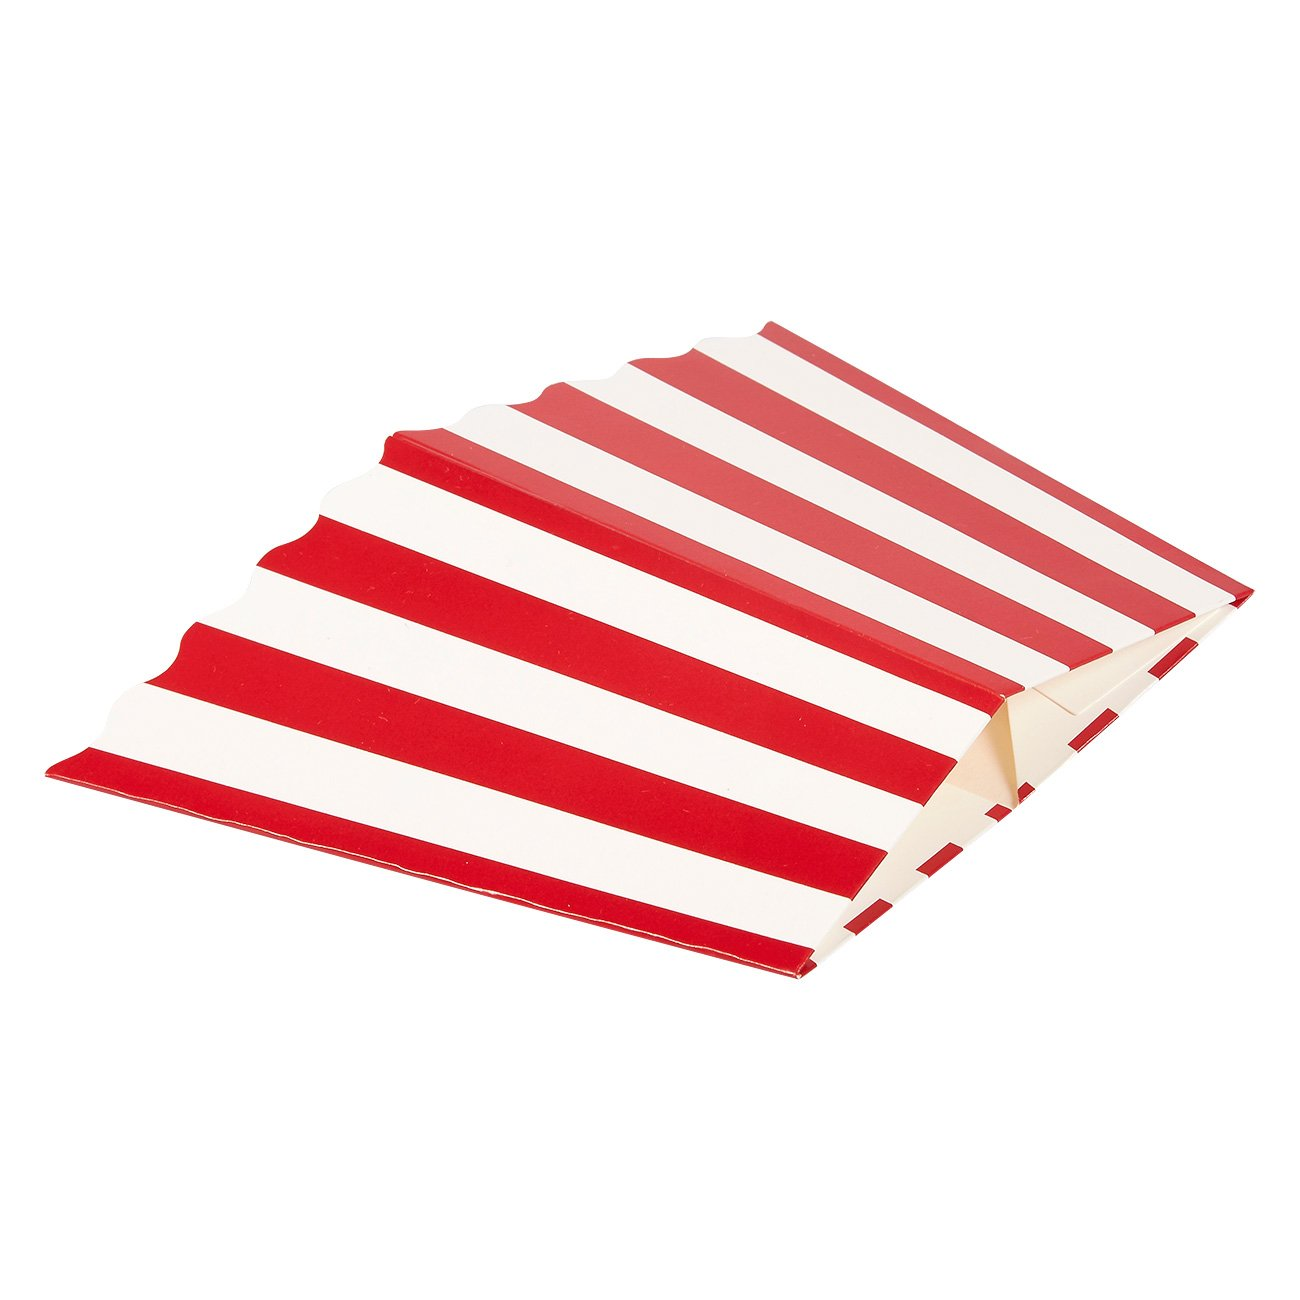 Set of 100 Popcorn Favor Boxes - Paper Popcorn Containers, Popcorn Party Supplies for Movie Nights, Movie-Themed Parties, Carnival Parties, Pirate Party, Red and White - 3.7 x 7.8 x 3.7 Inches by Blue Panda (Image #5)